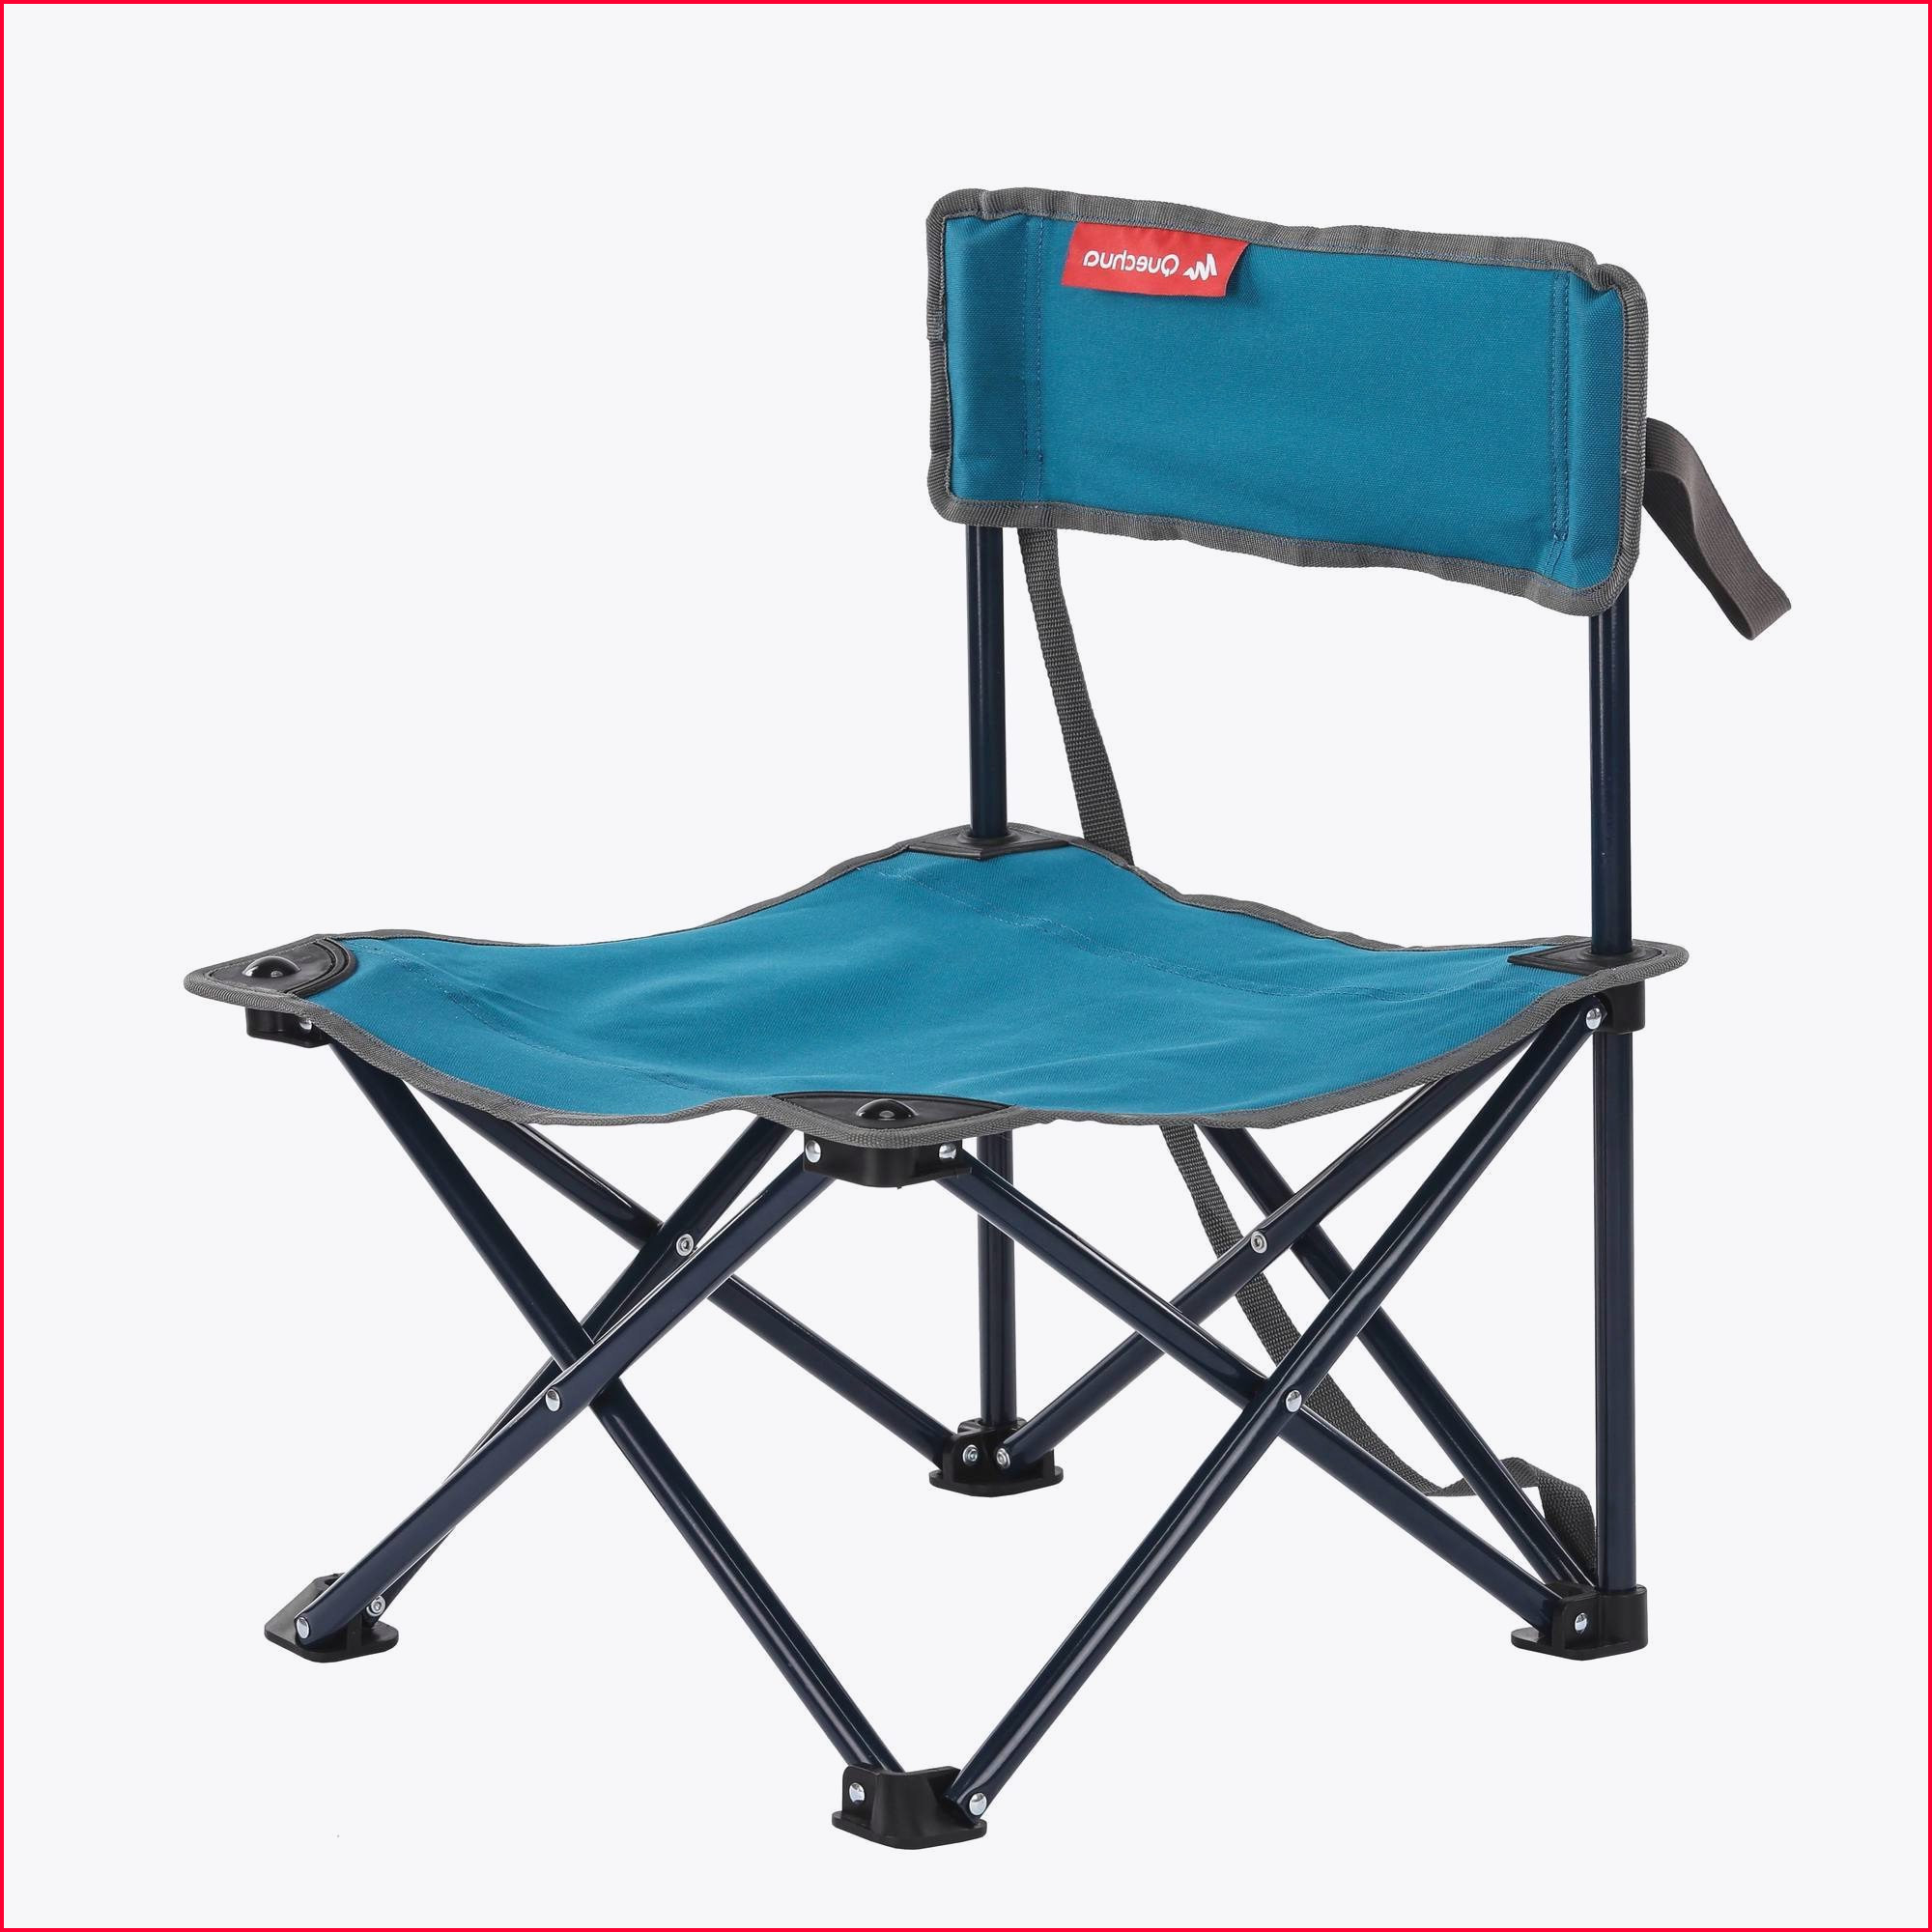 Sillas Plegables Decathlon T8dj Silla Plegable Decathlon Mesa Plegable Camping Decathlon Dise